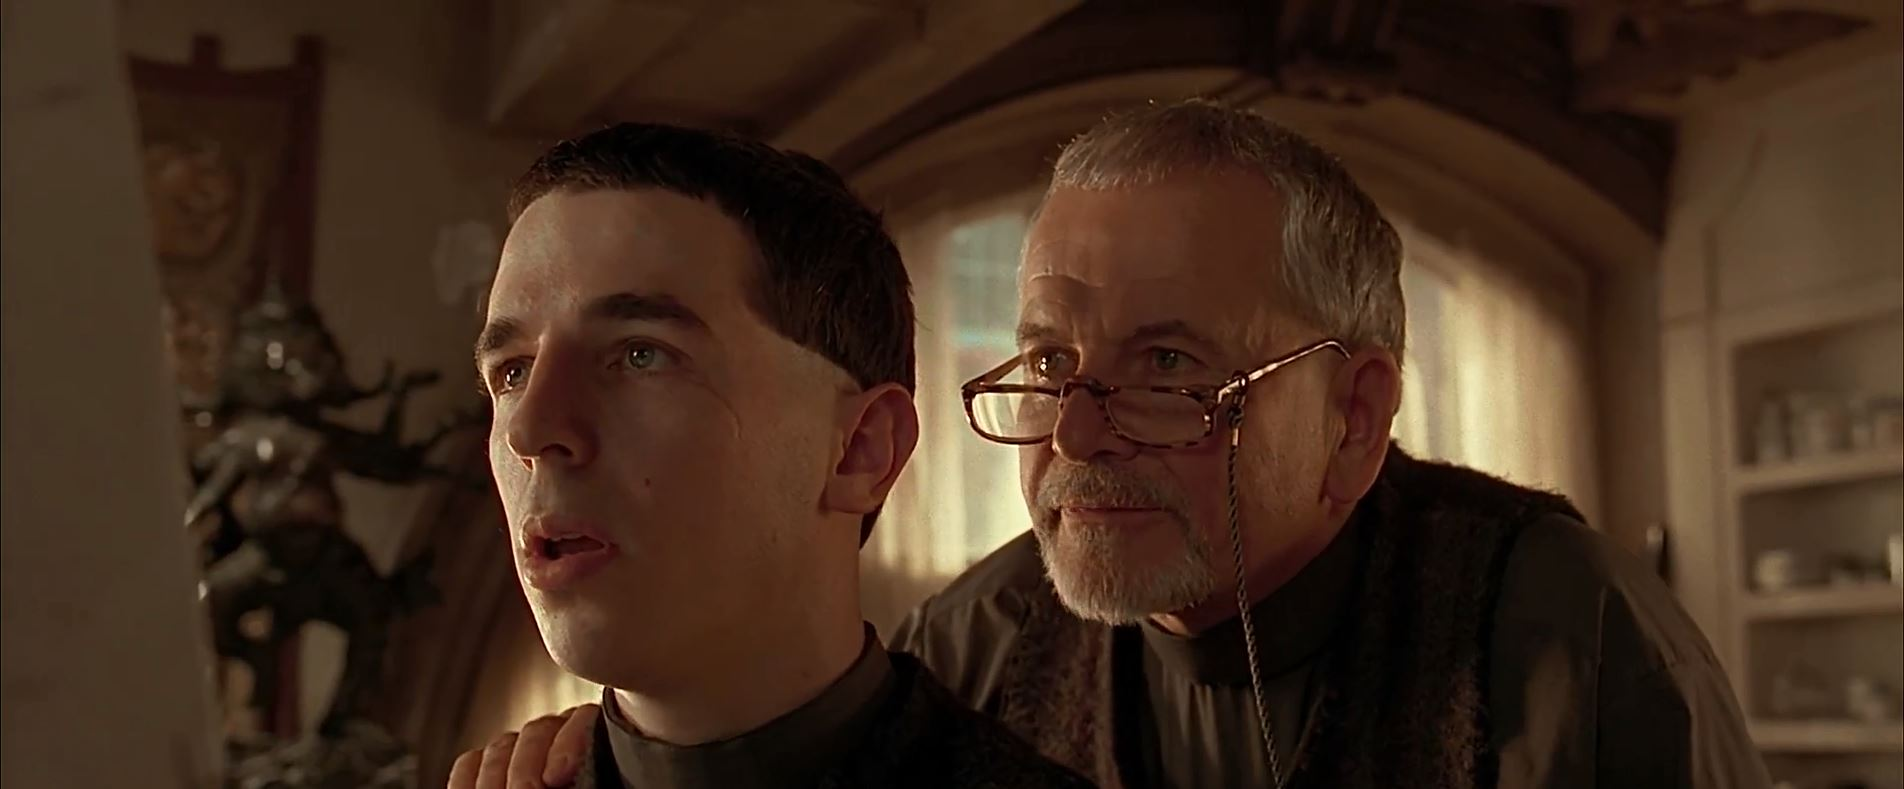 Ian Holm as Father Vito Cornelius - The Fifth Element